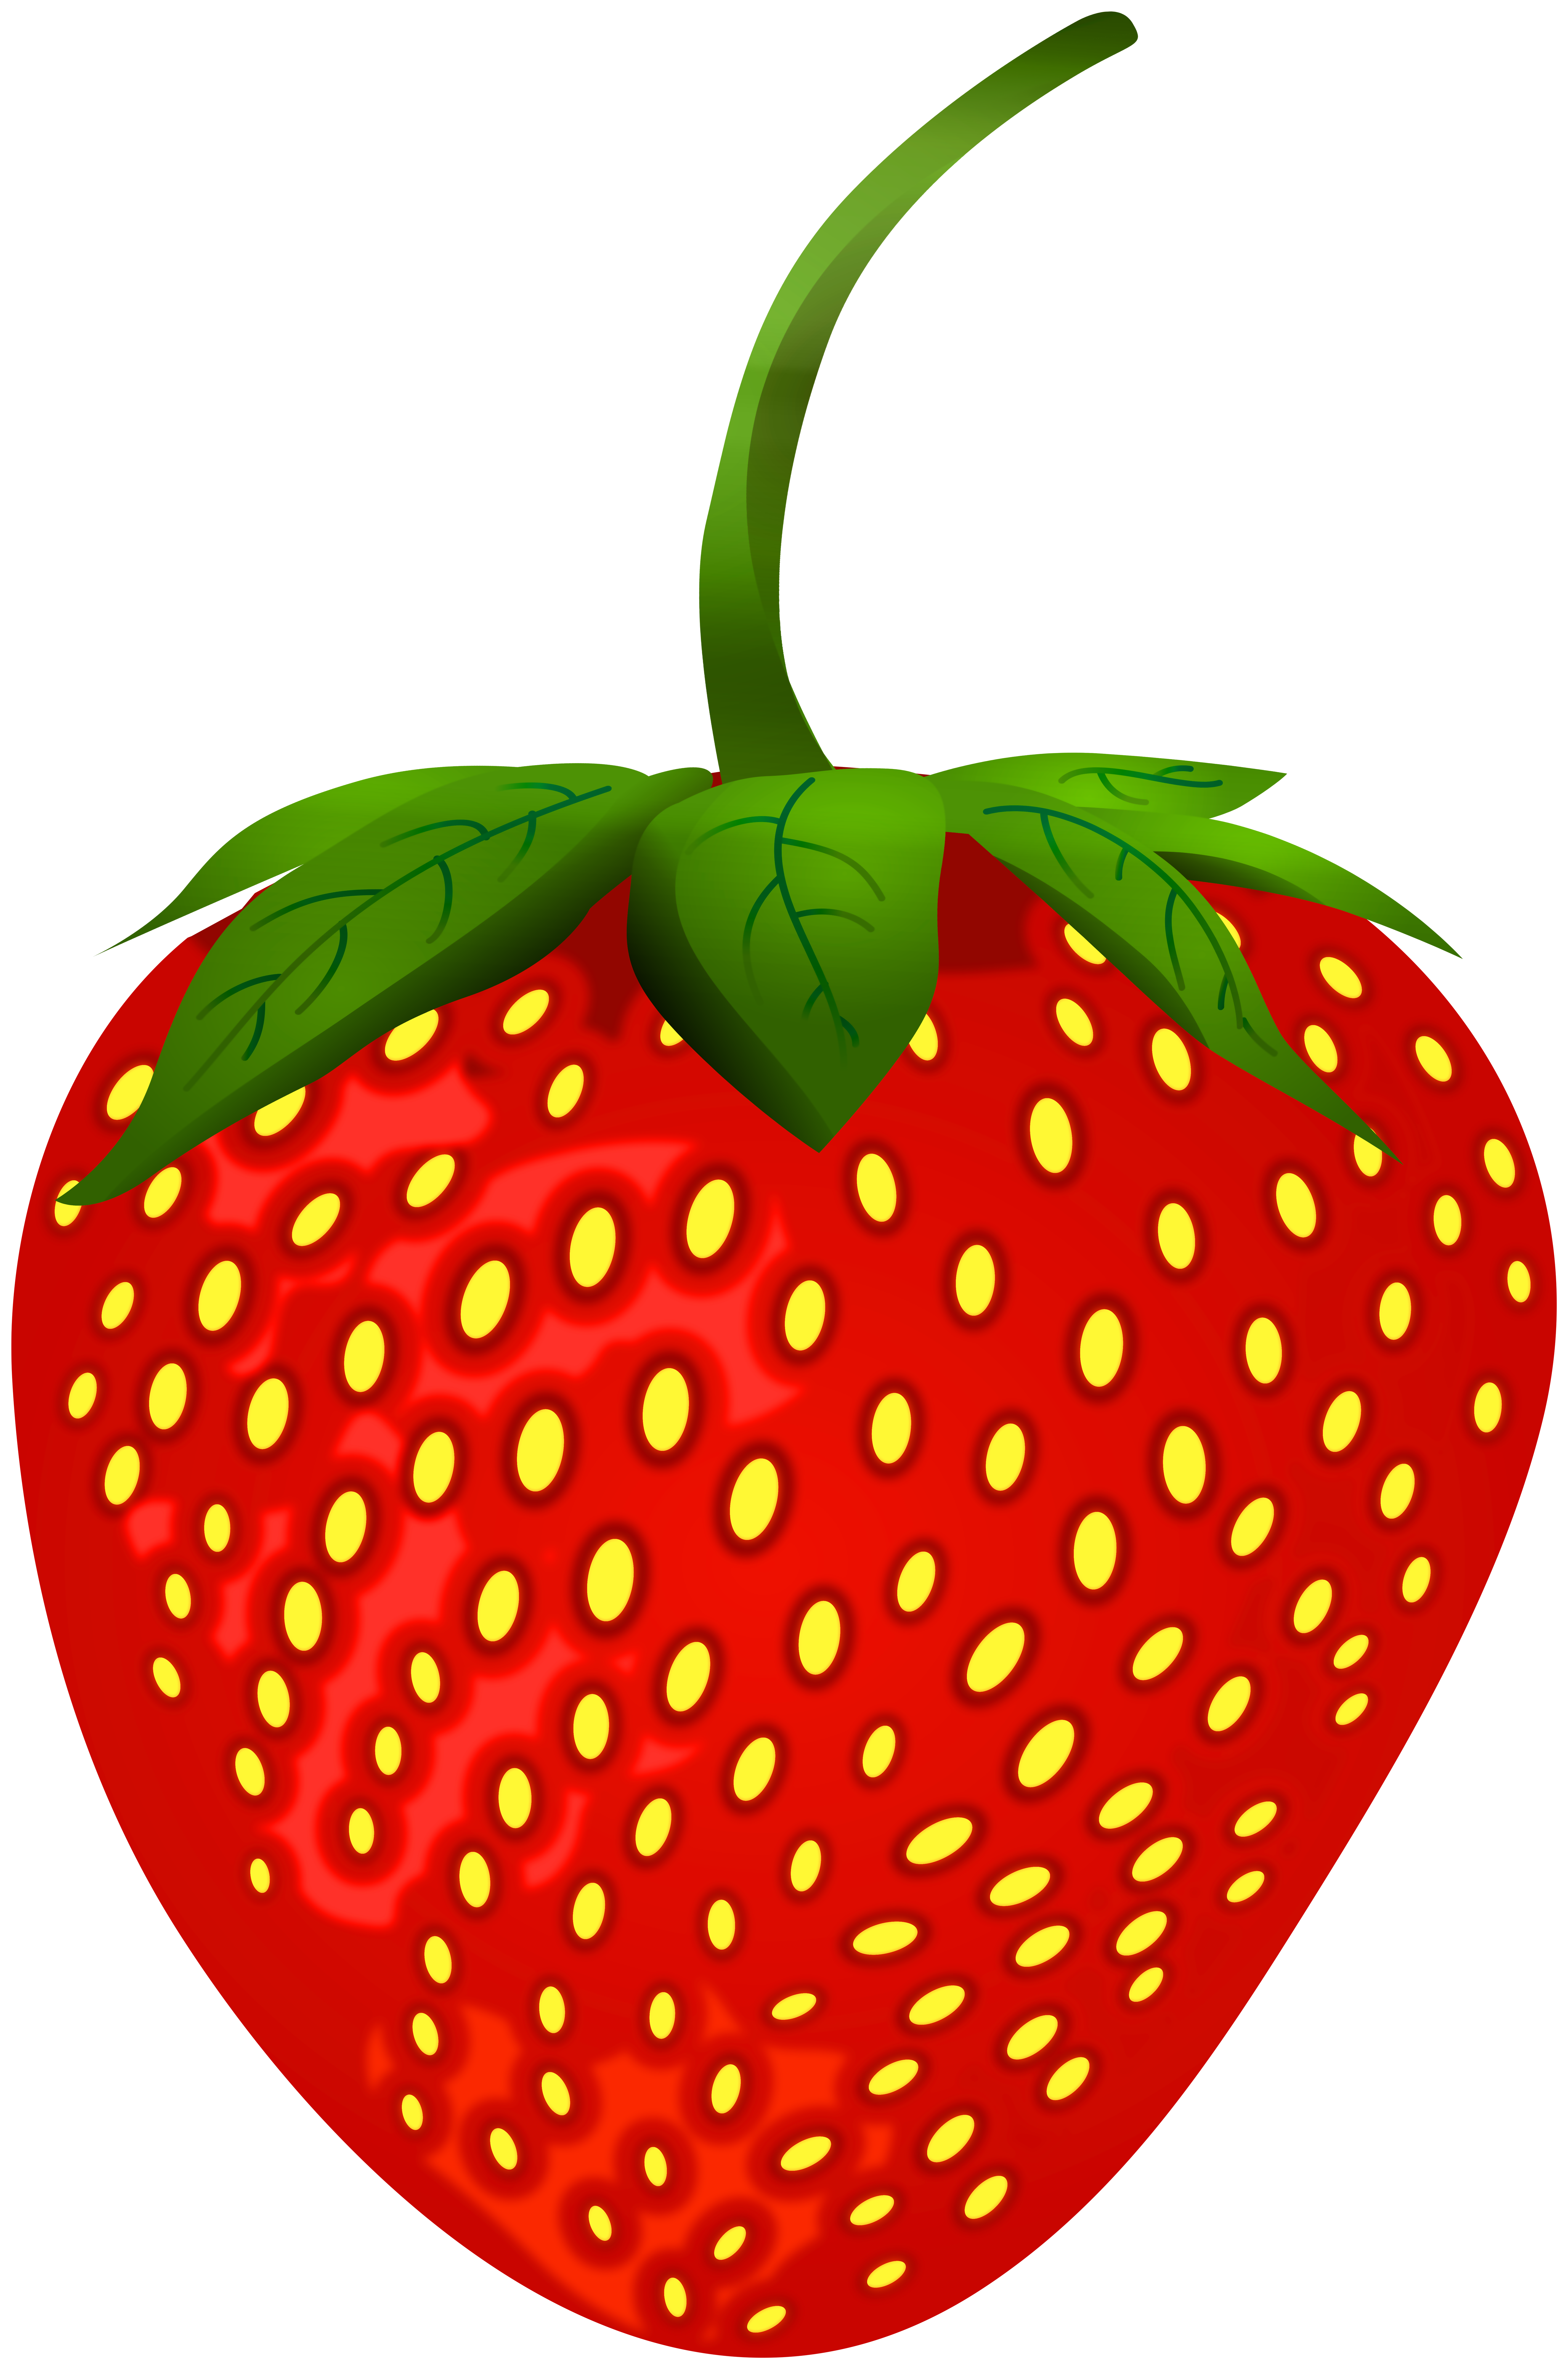 Clipart strawberrys image royalty free Strawberry PNG Clip Art - Best WEB Clipart image royalty free